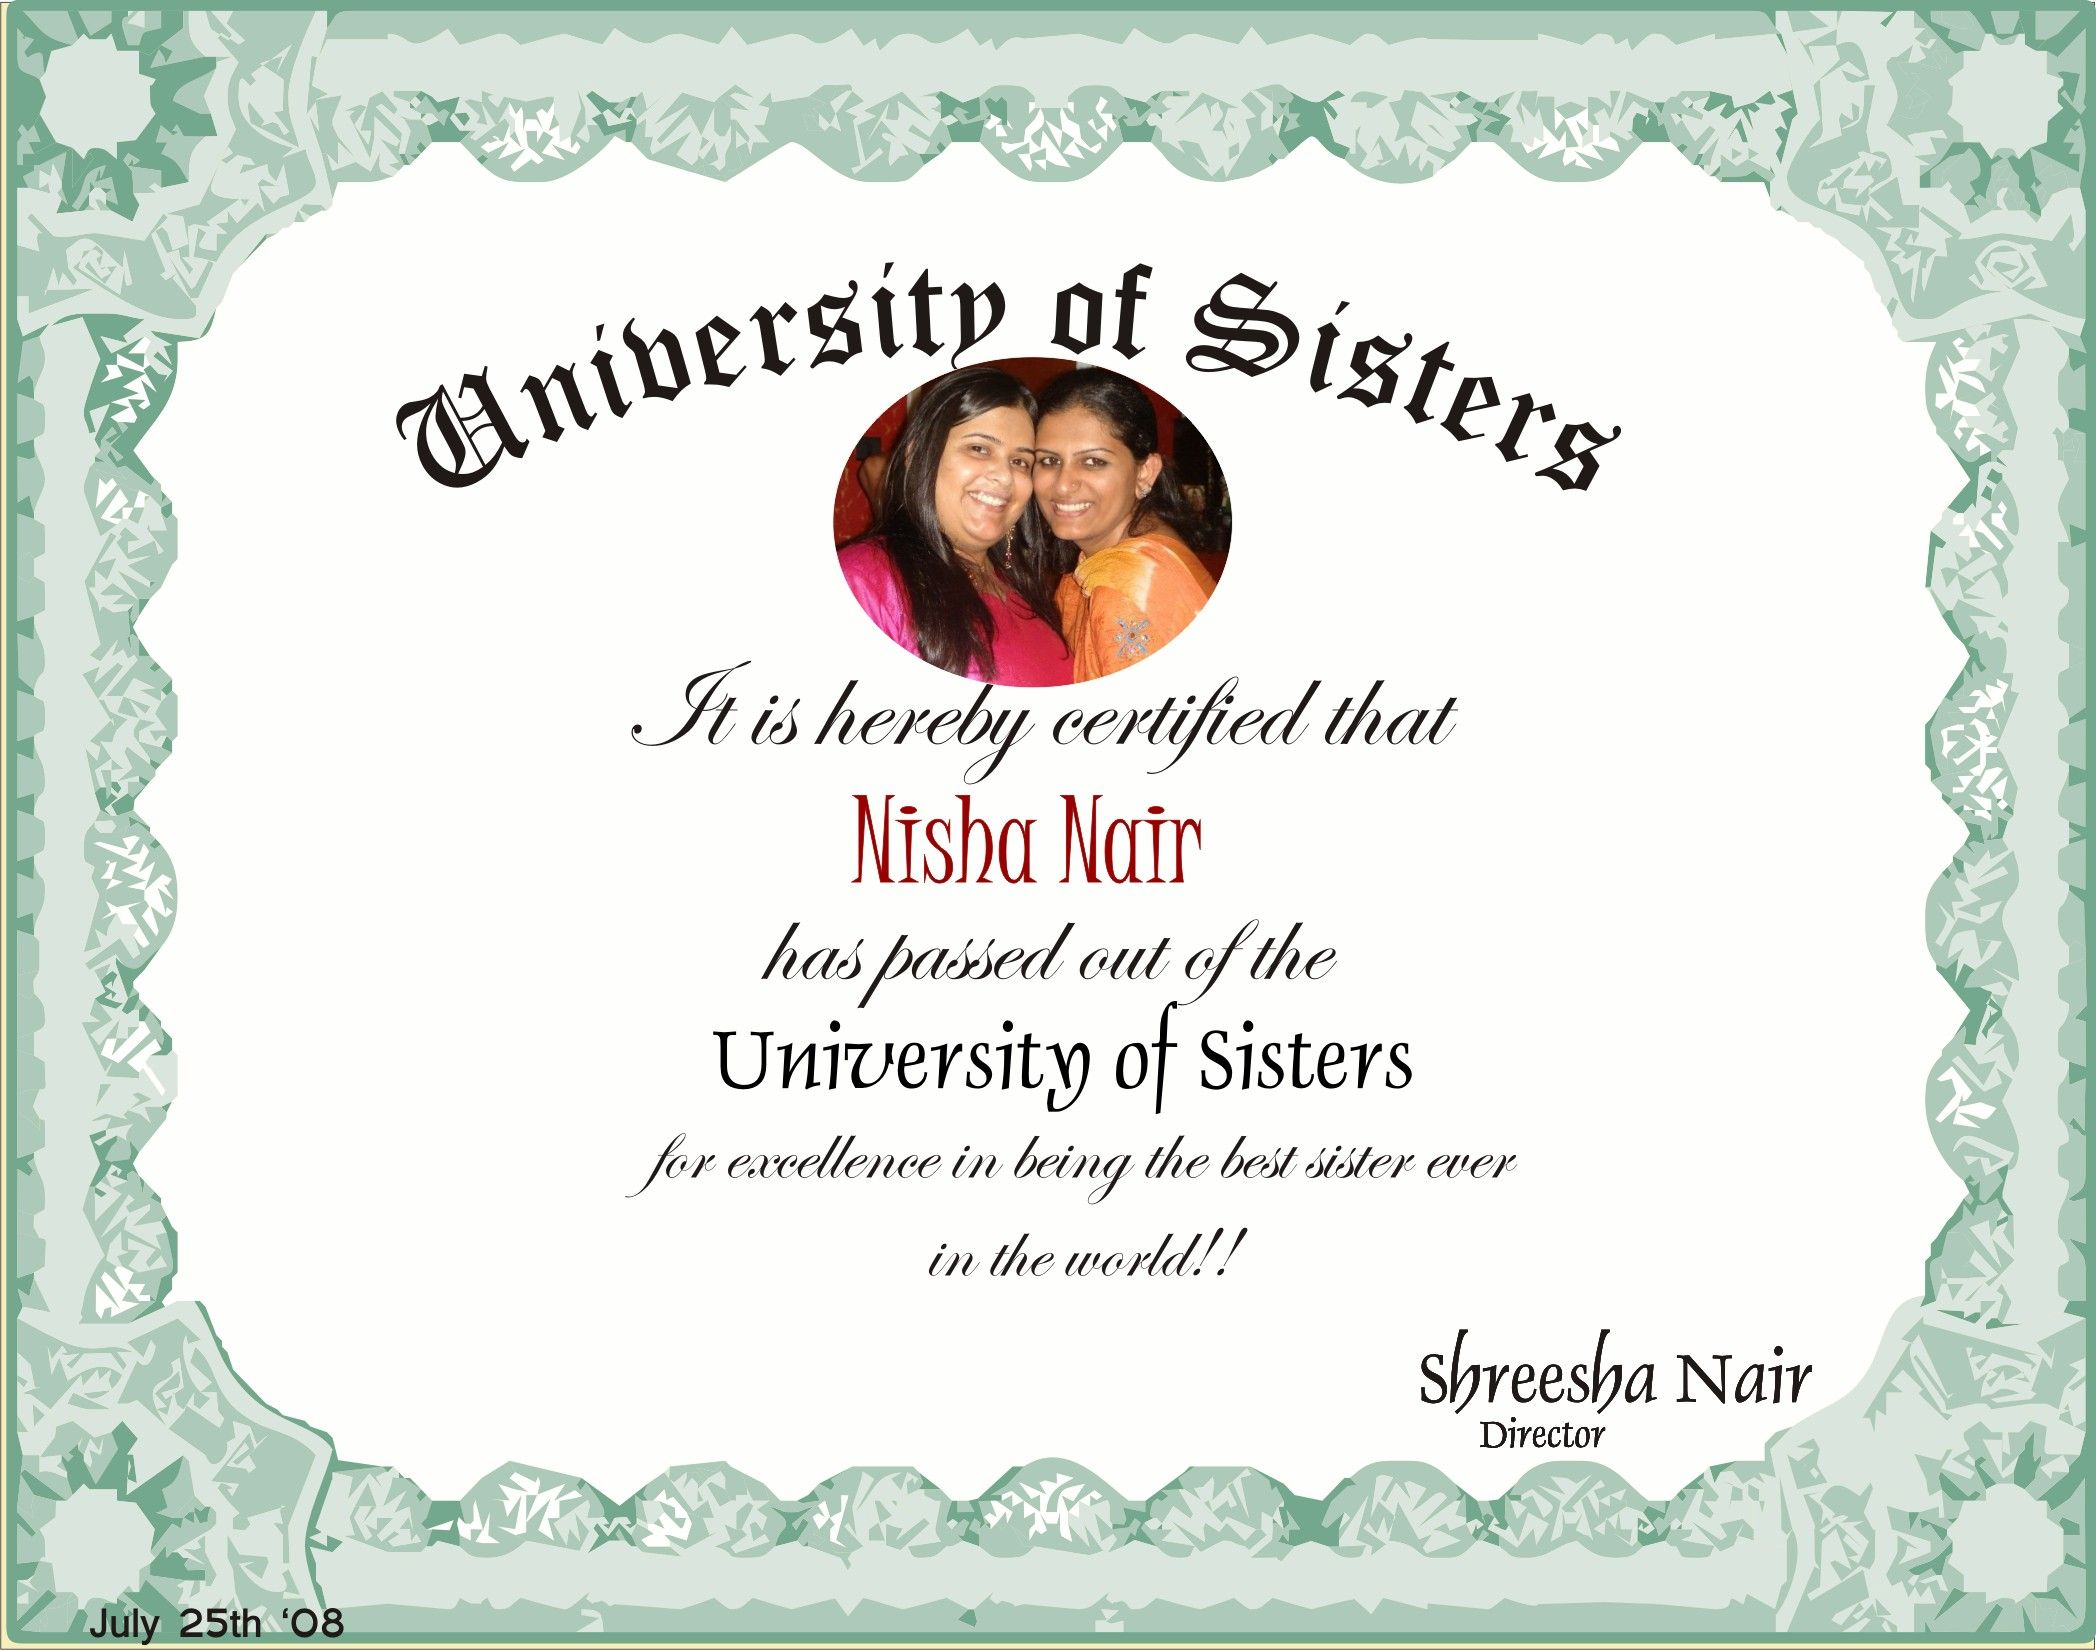 Customized Certificate For Your Sister Declaring Her The Super